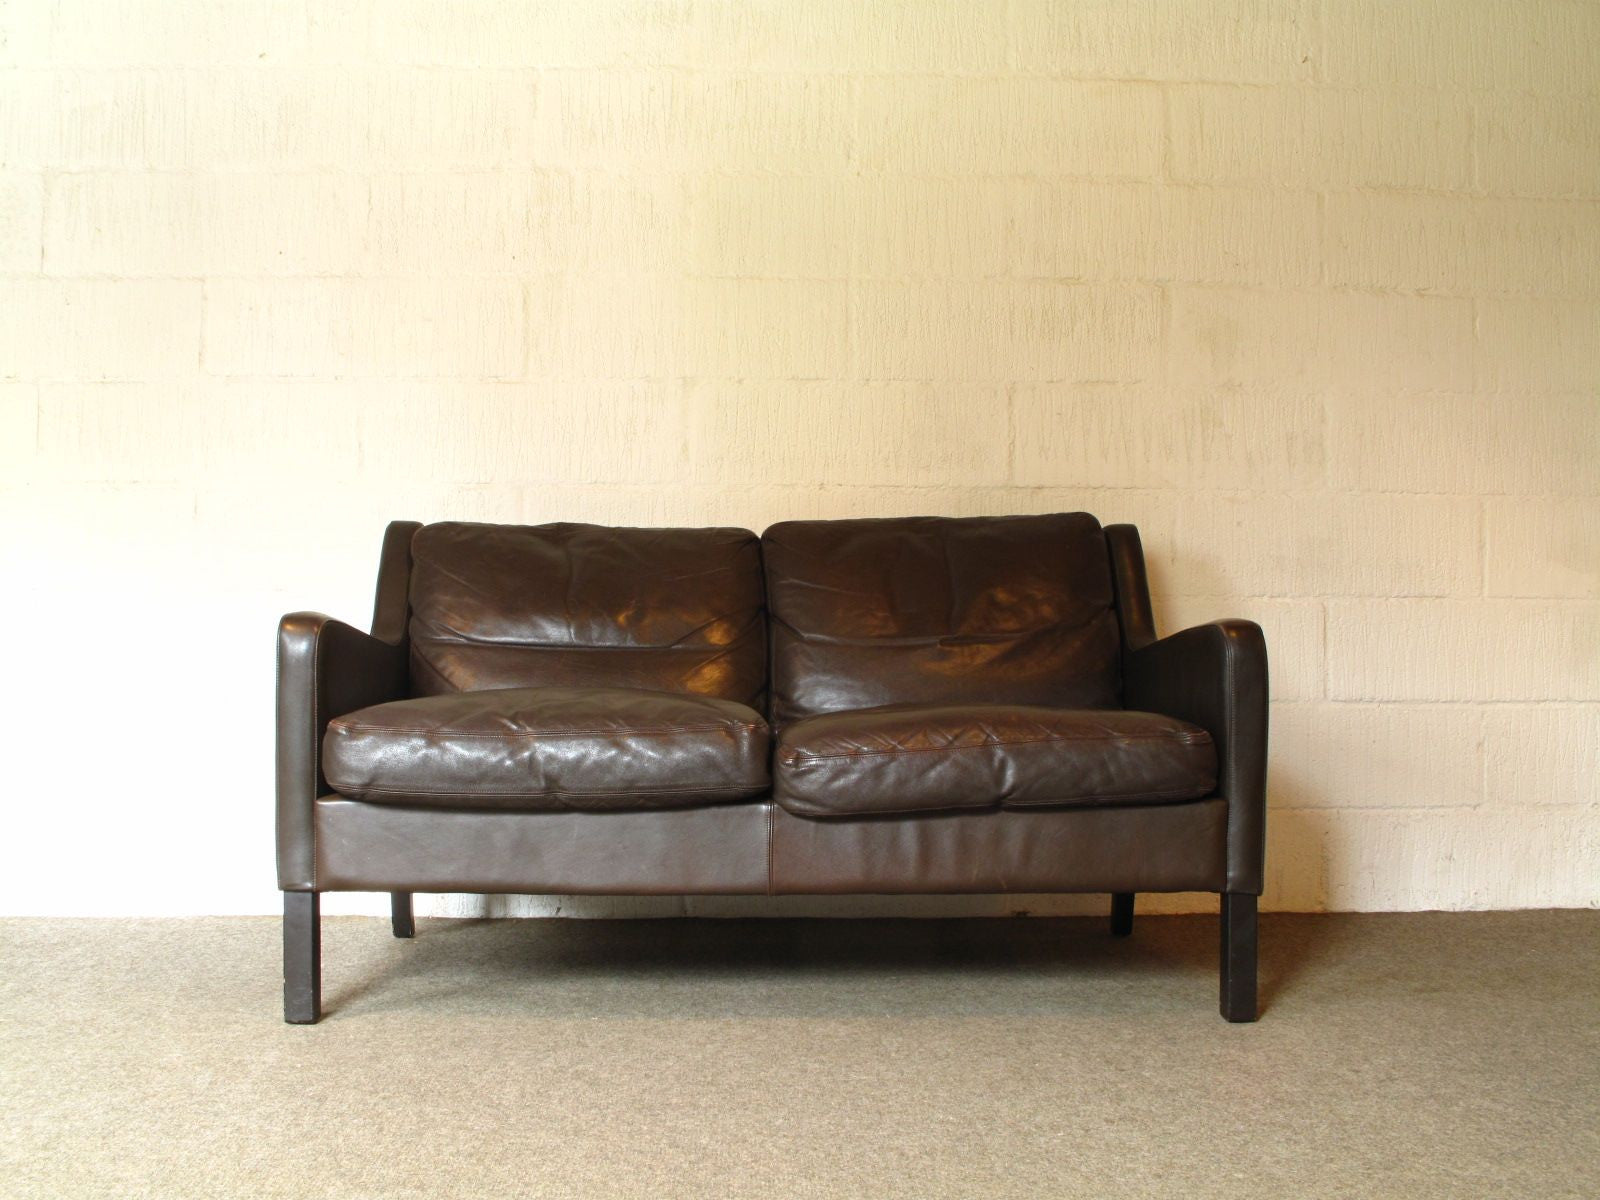 Two seat leather sofa by G. Thams